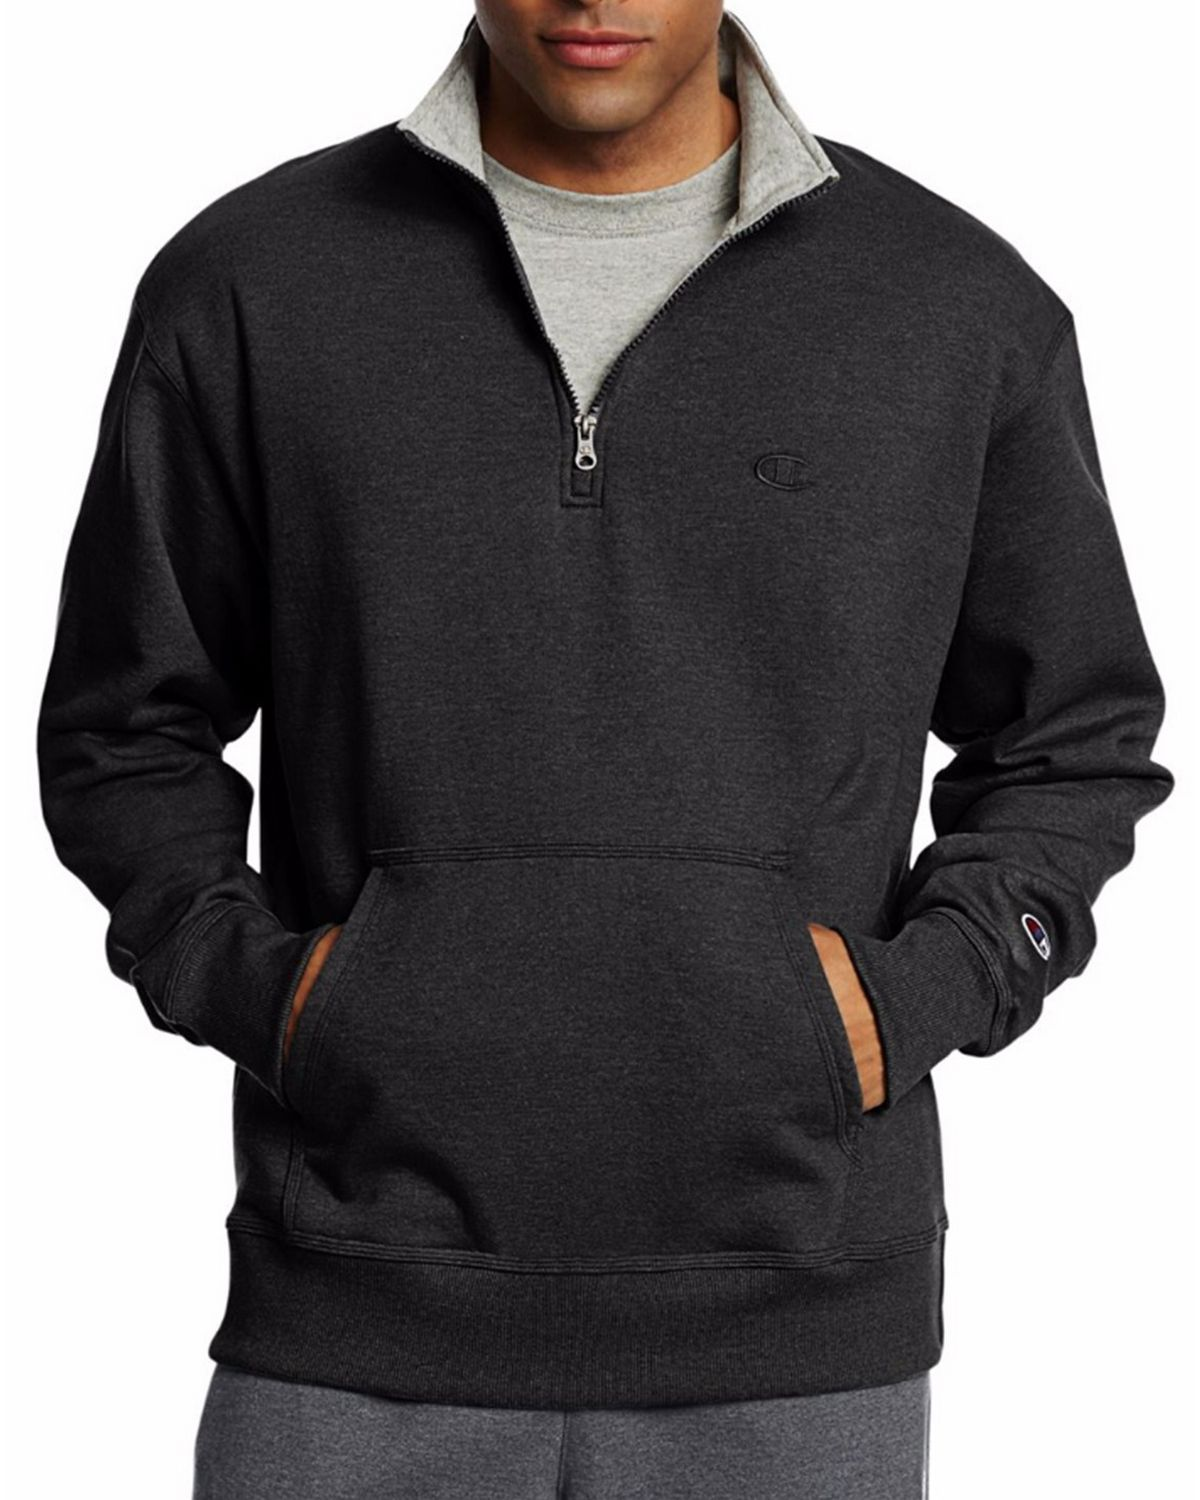 Champion S0896 Mens Fleece 1/4 Zip Pullover - Black - S S0896